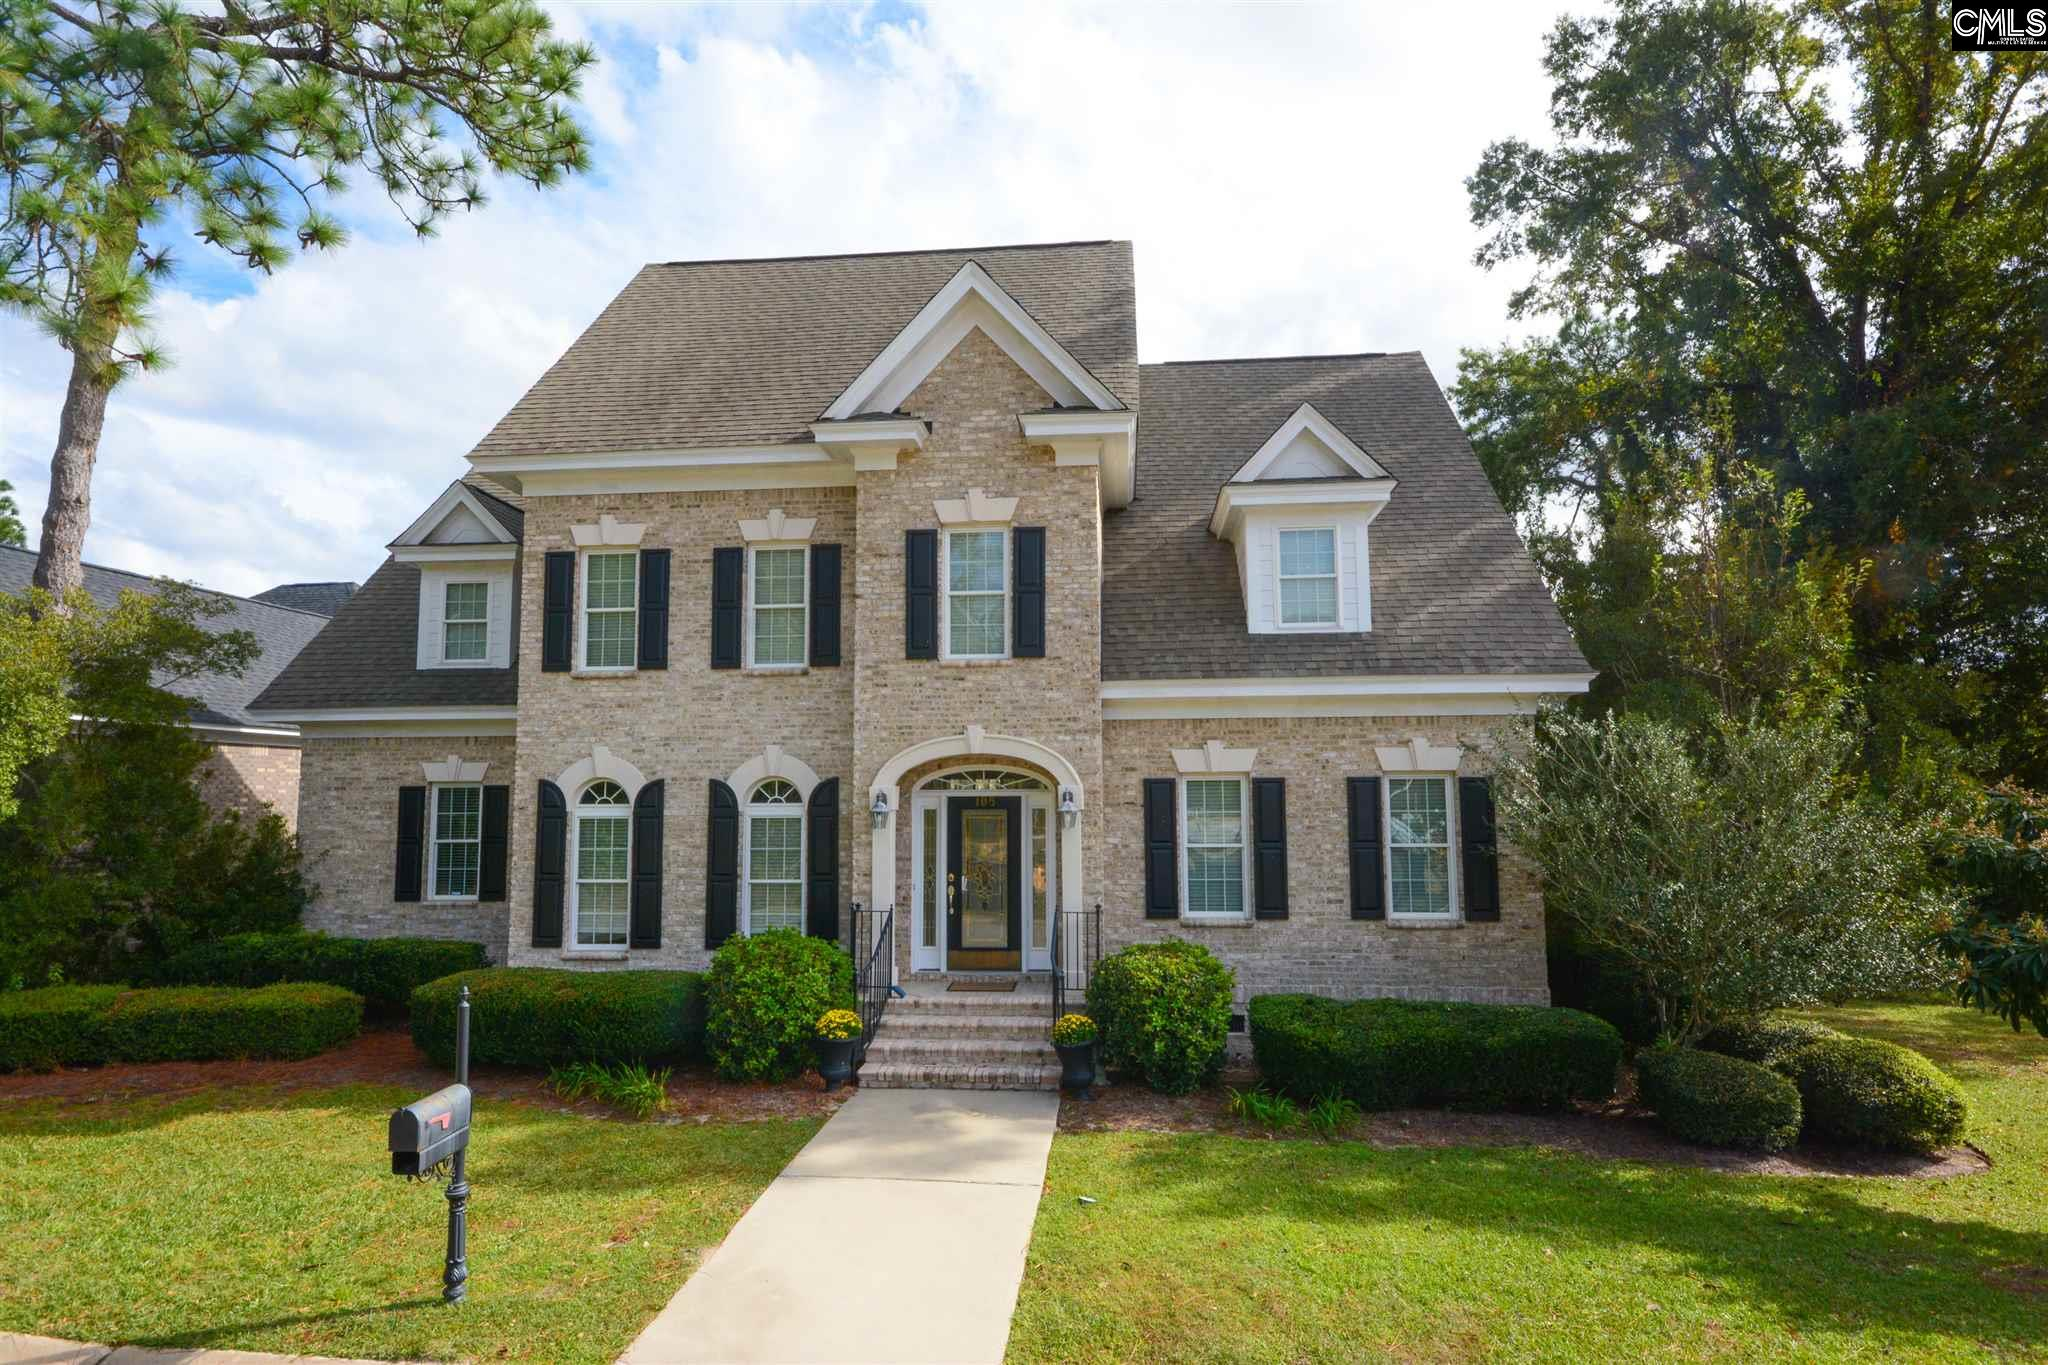 105 Sanibel Columbia, SC 29223